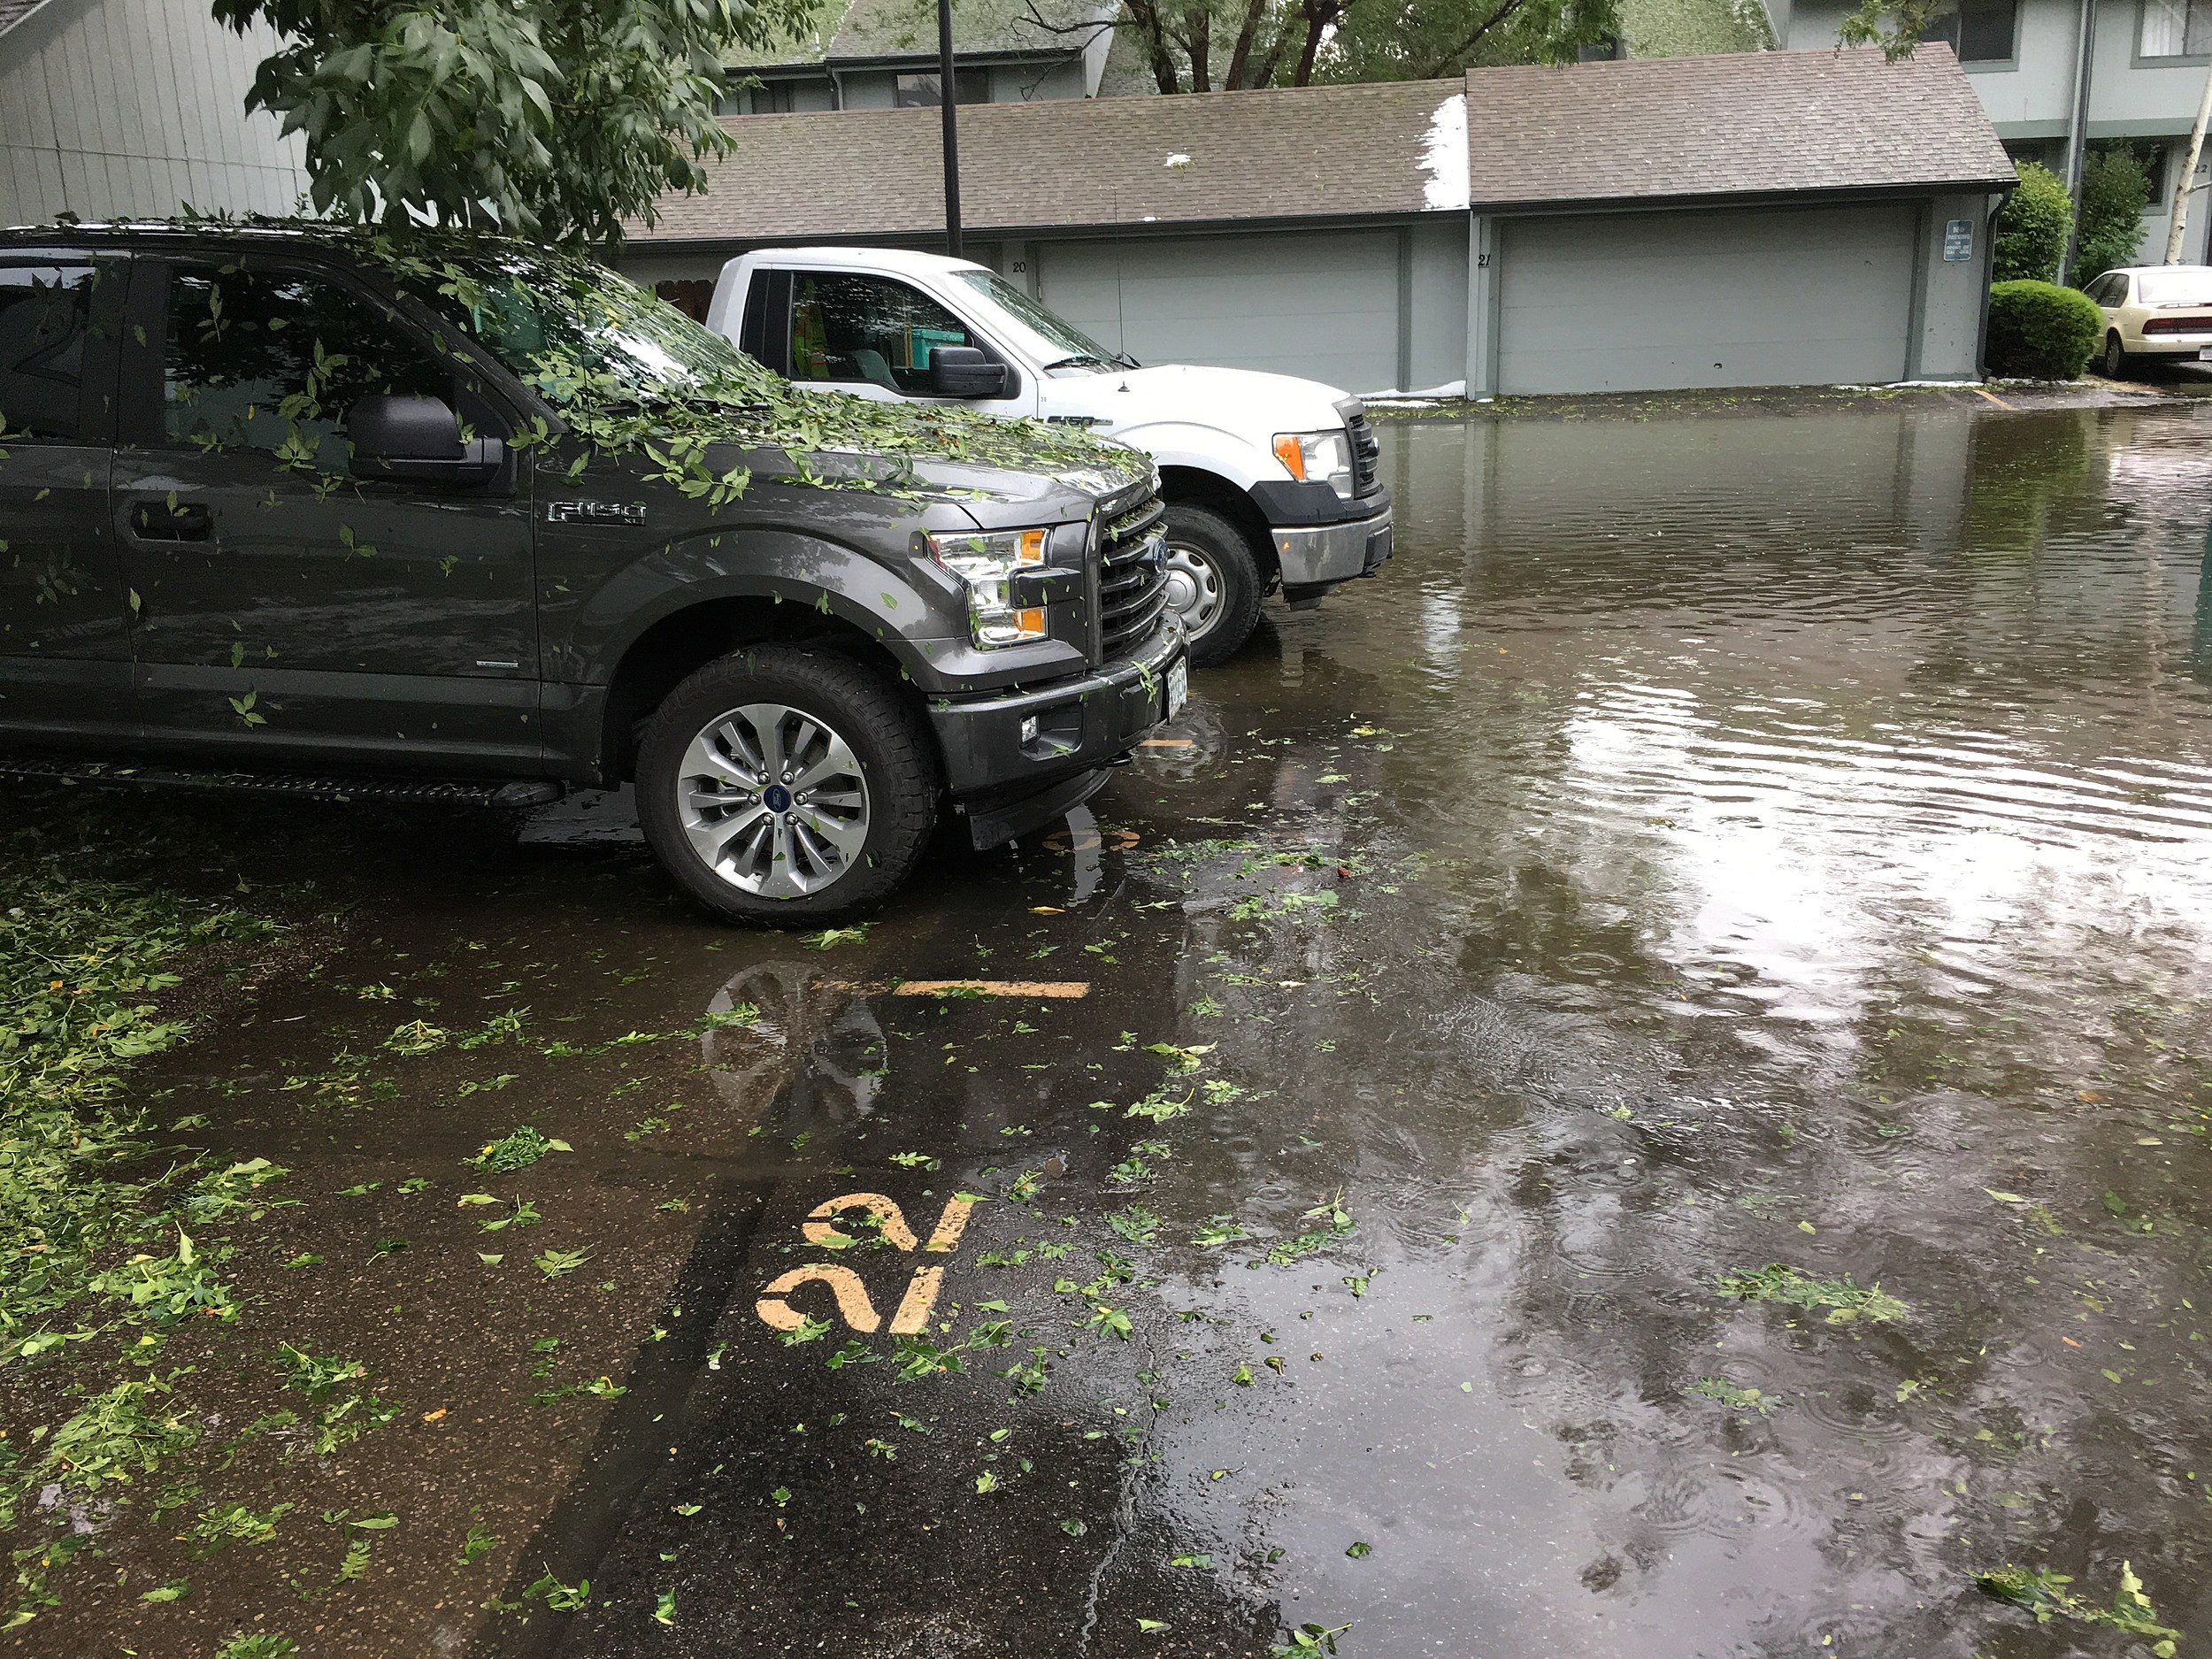 Todd's Parking Lot was Flooded by the Thunderstorm on Thursday